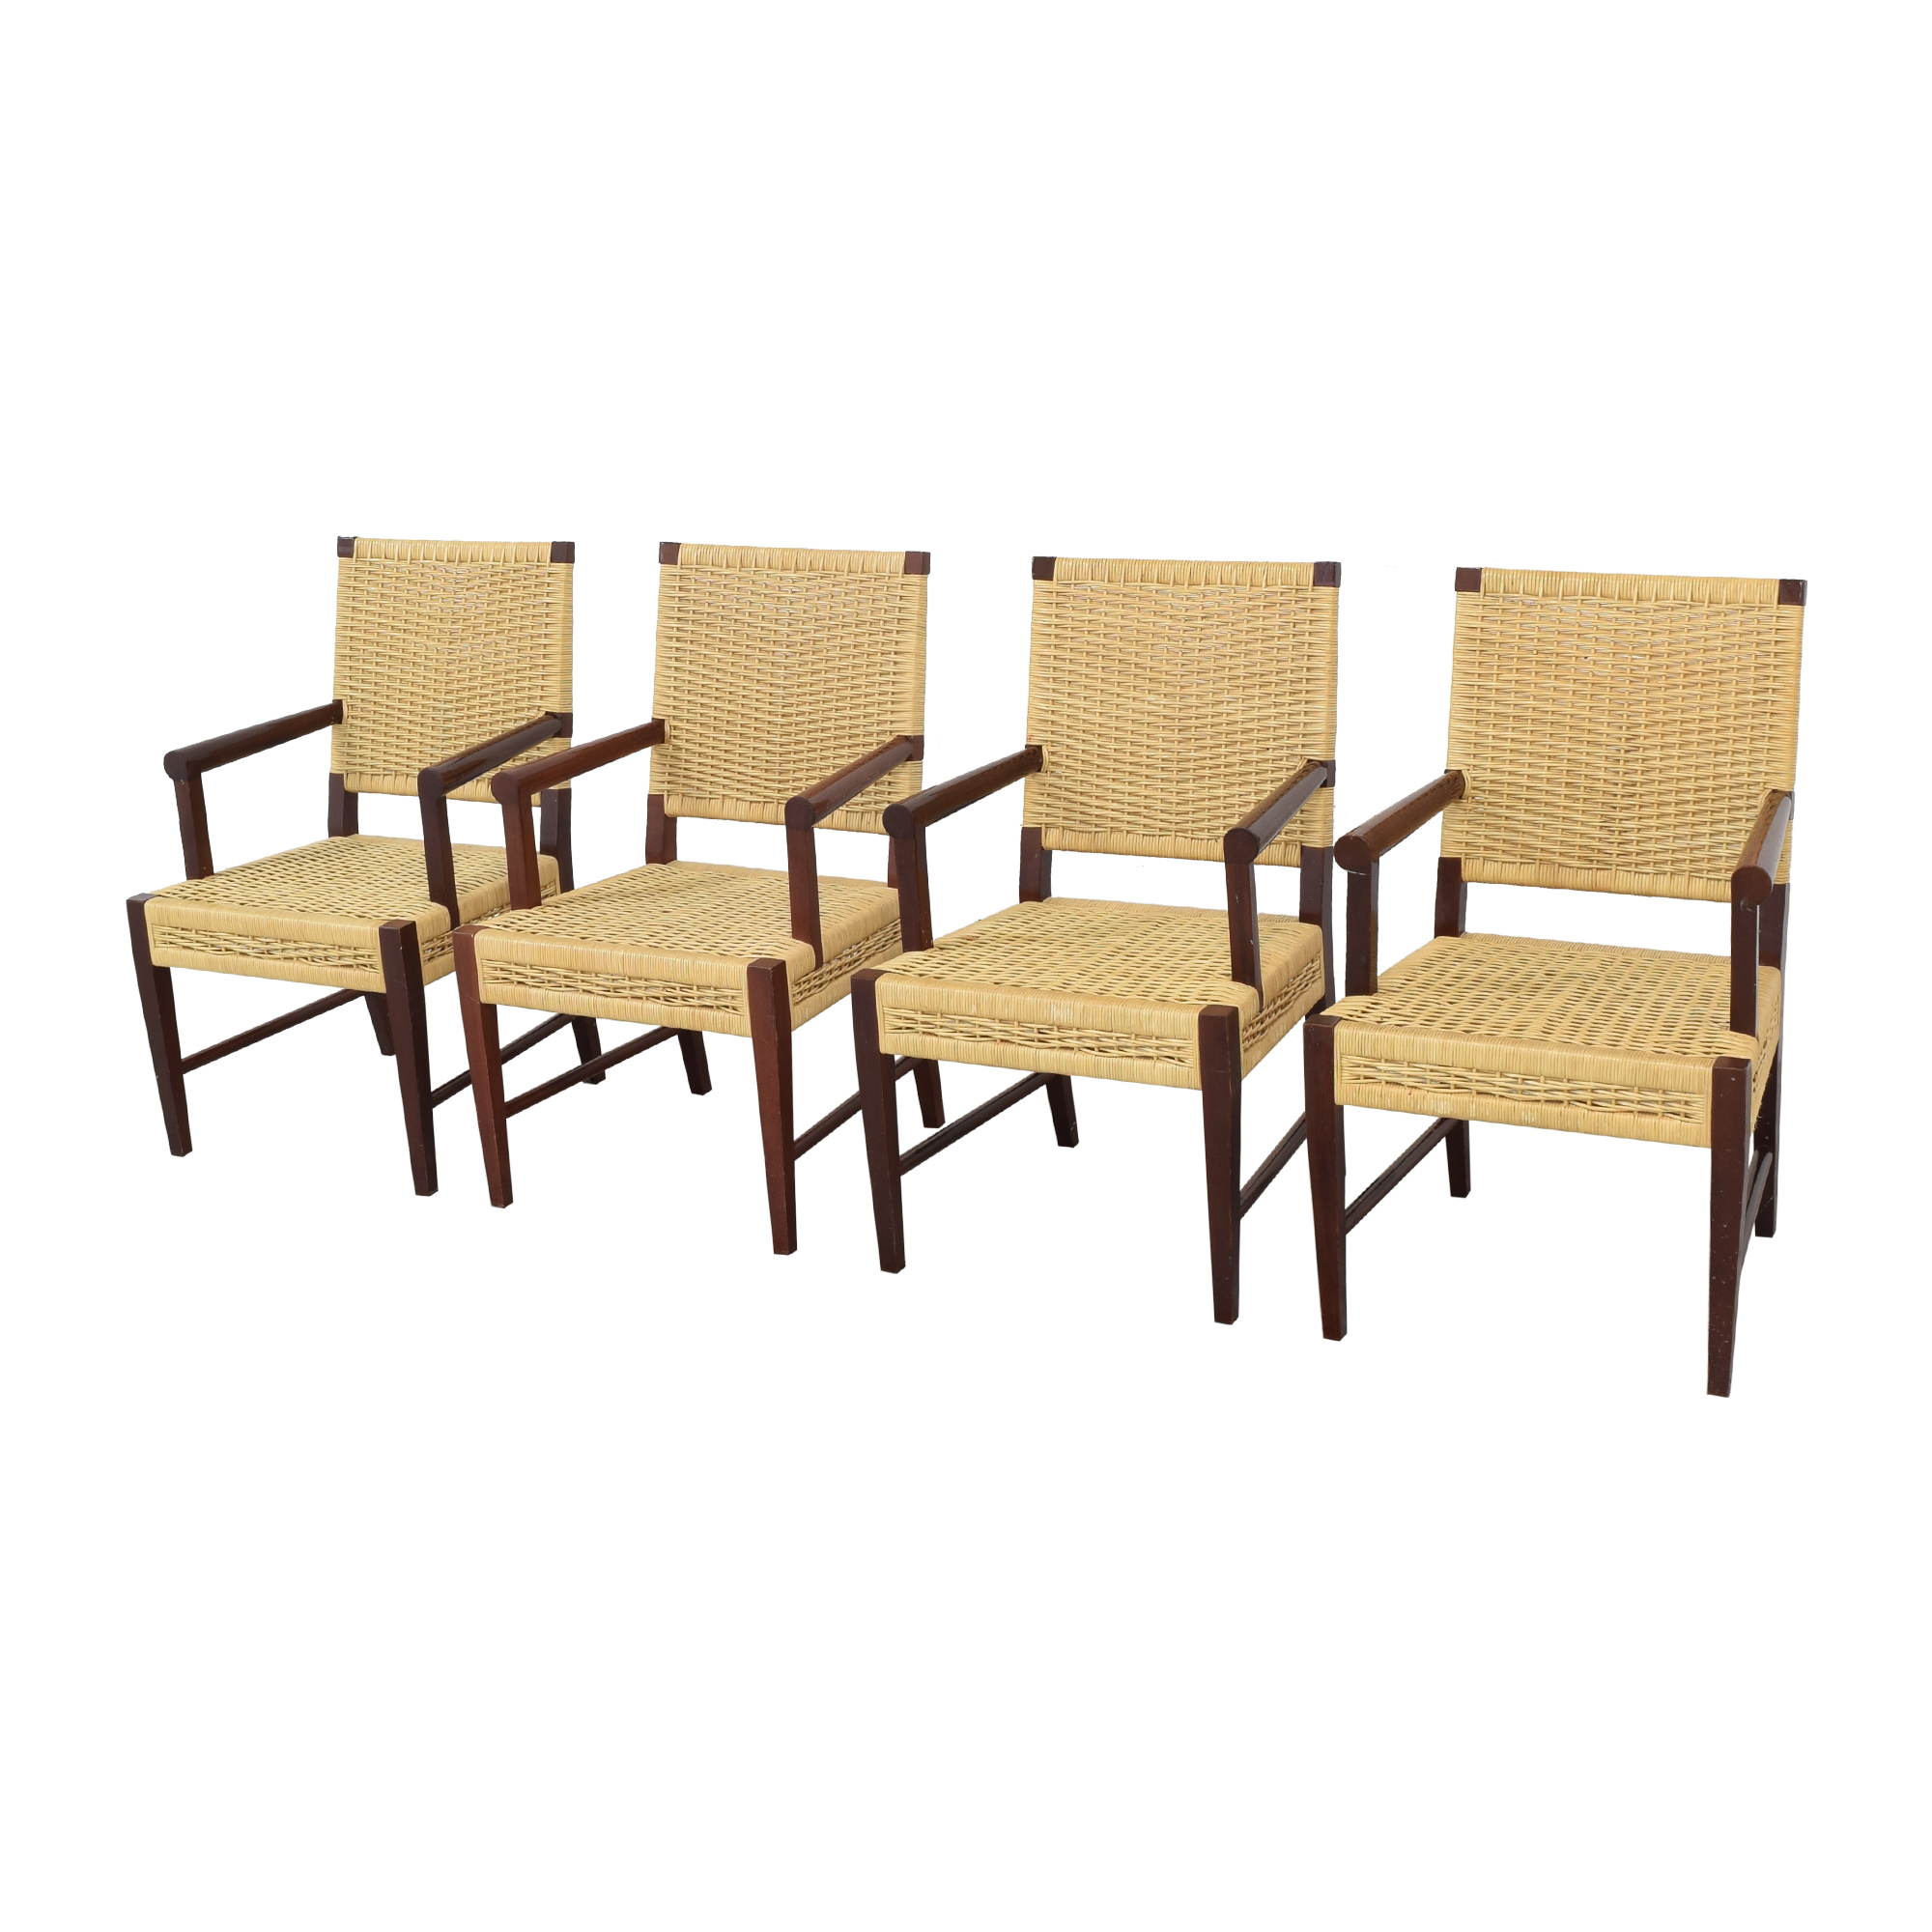 Donghia Donghia Dining Chairs in Merbau Wood with Raffia Weaving on sale